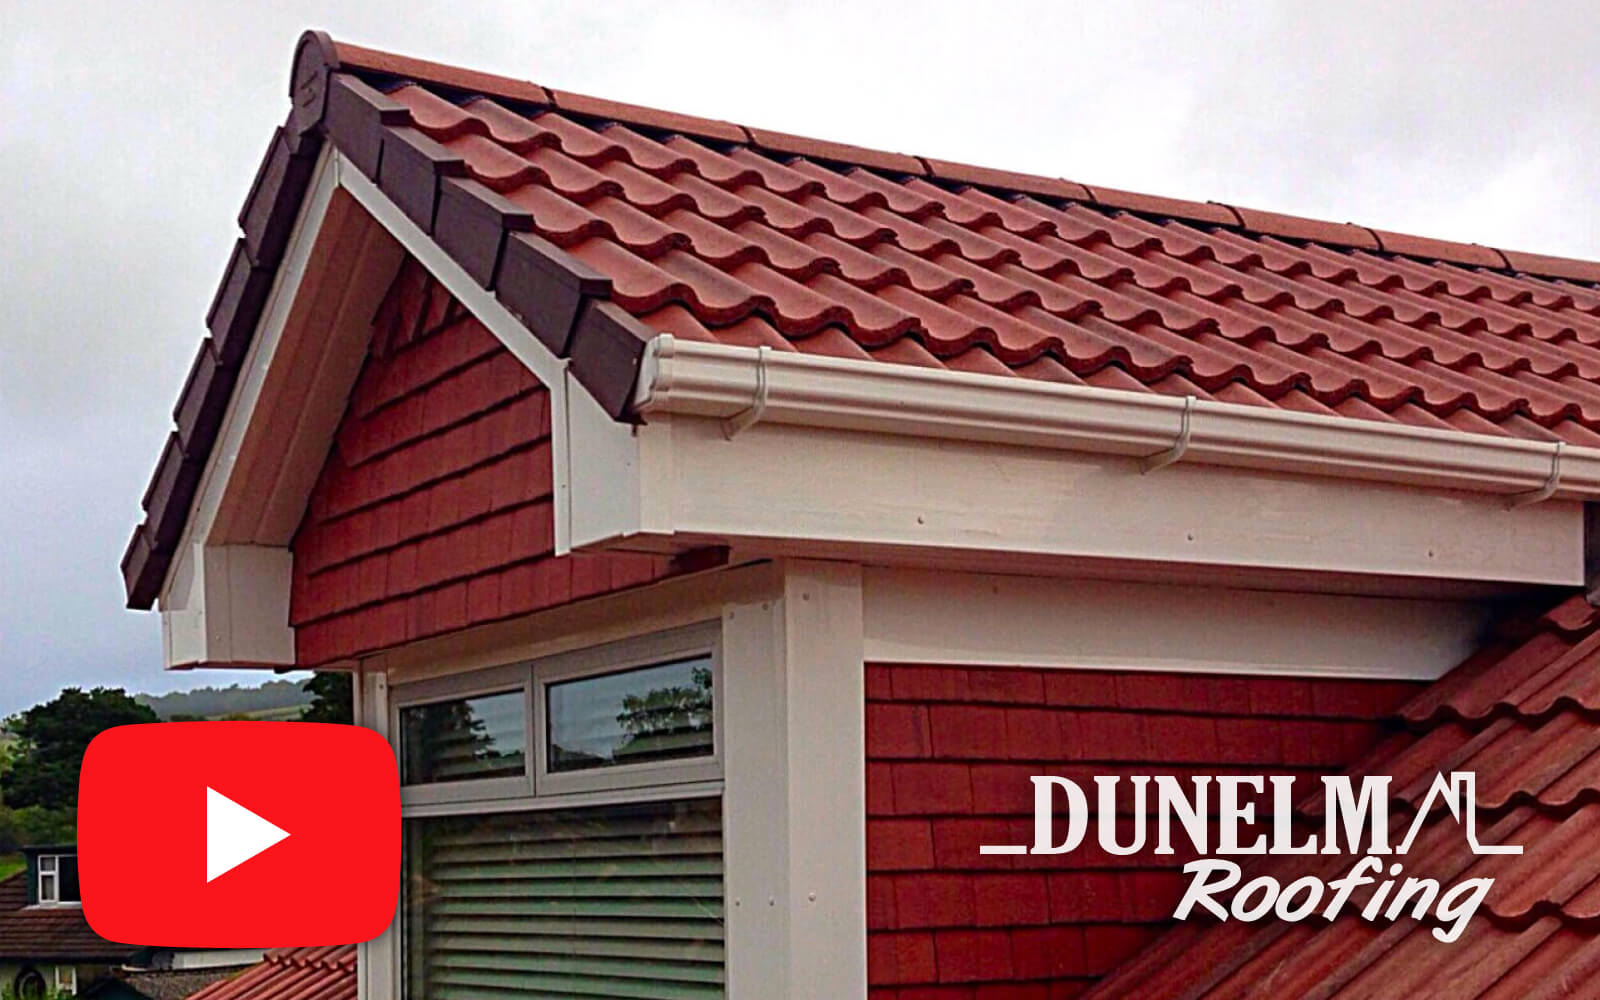 Dunelm Roofing Video